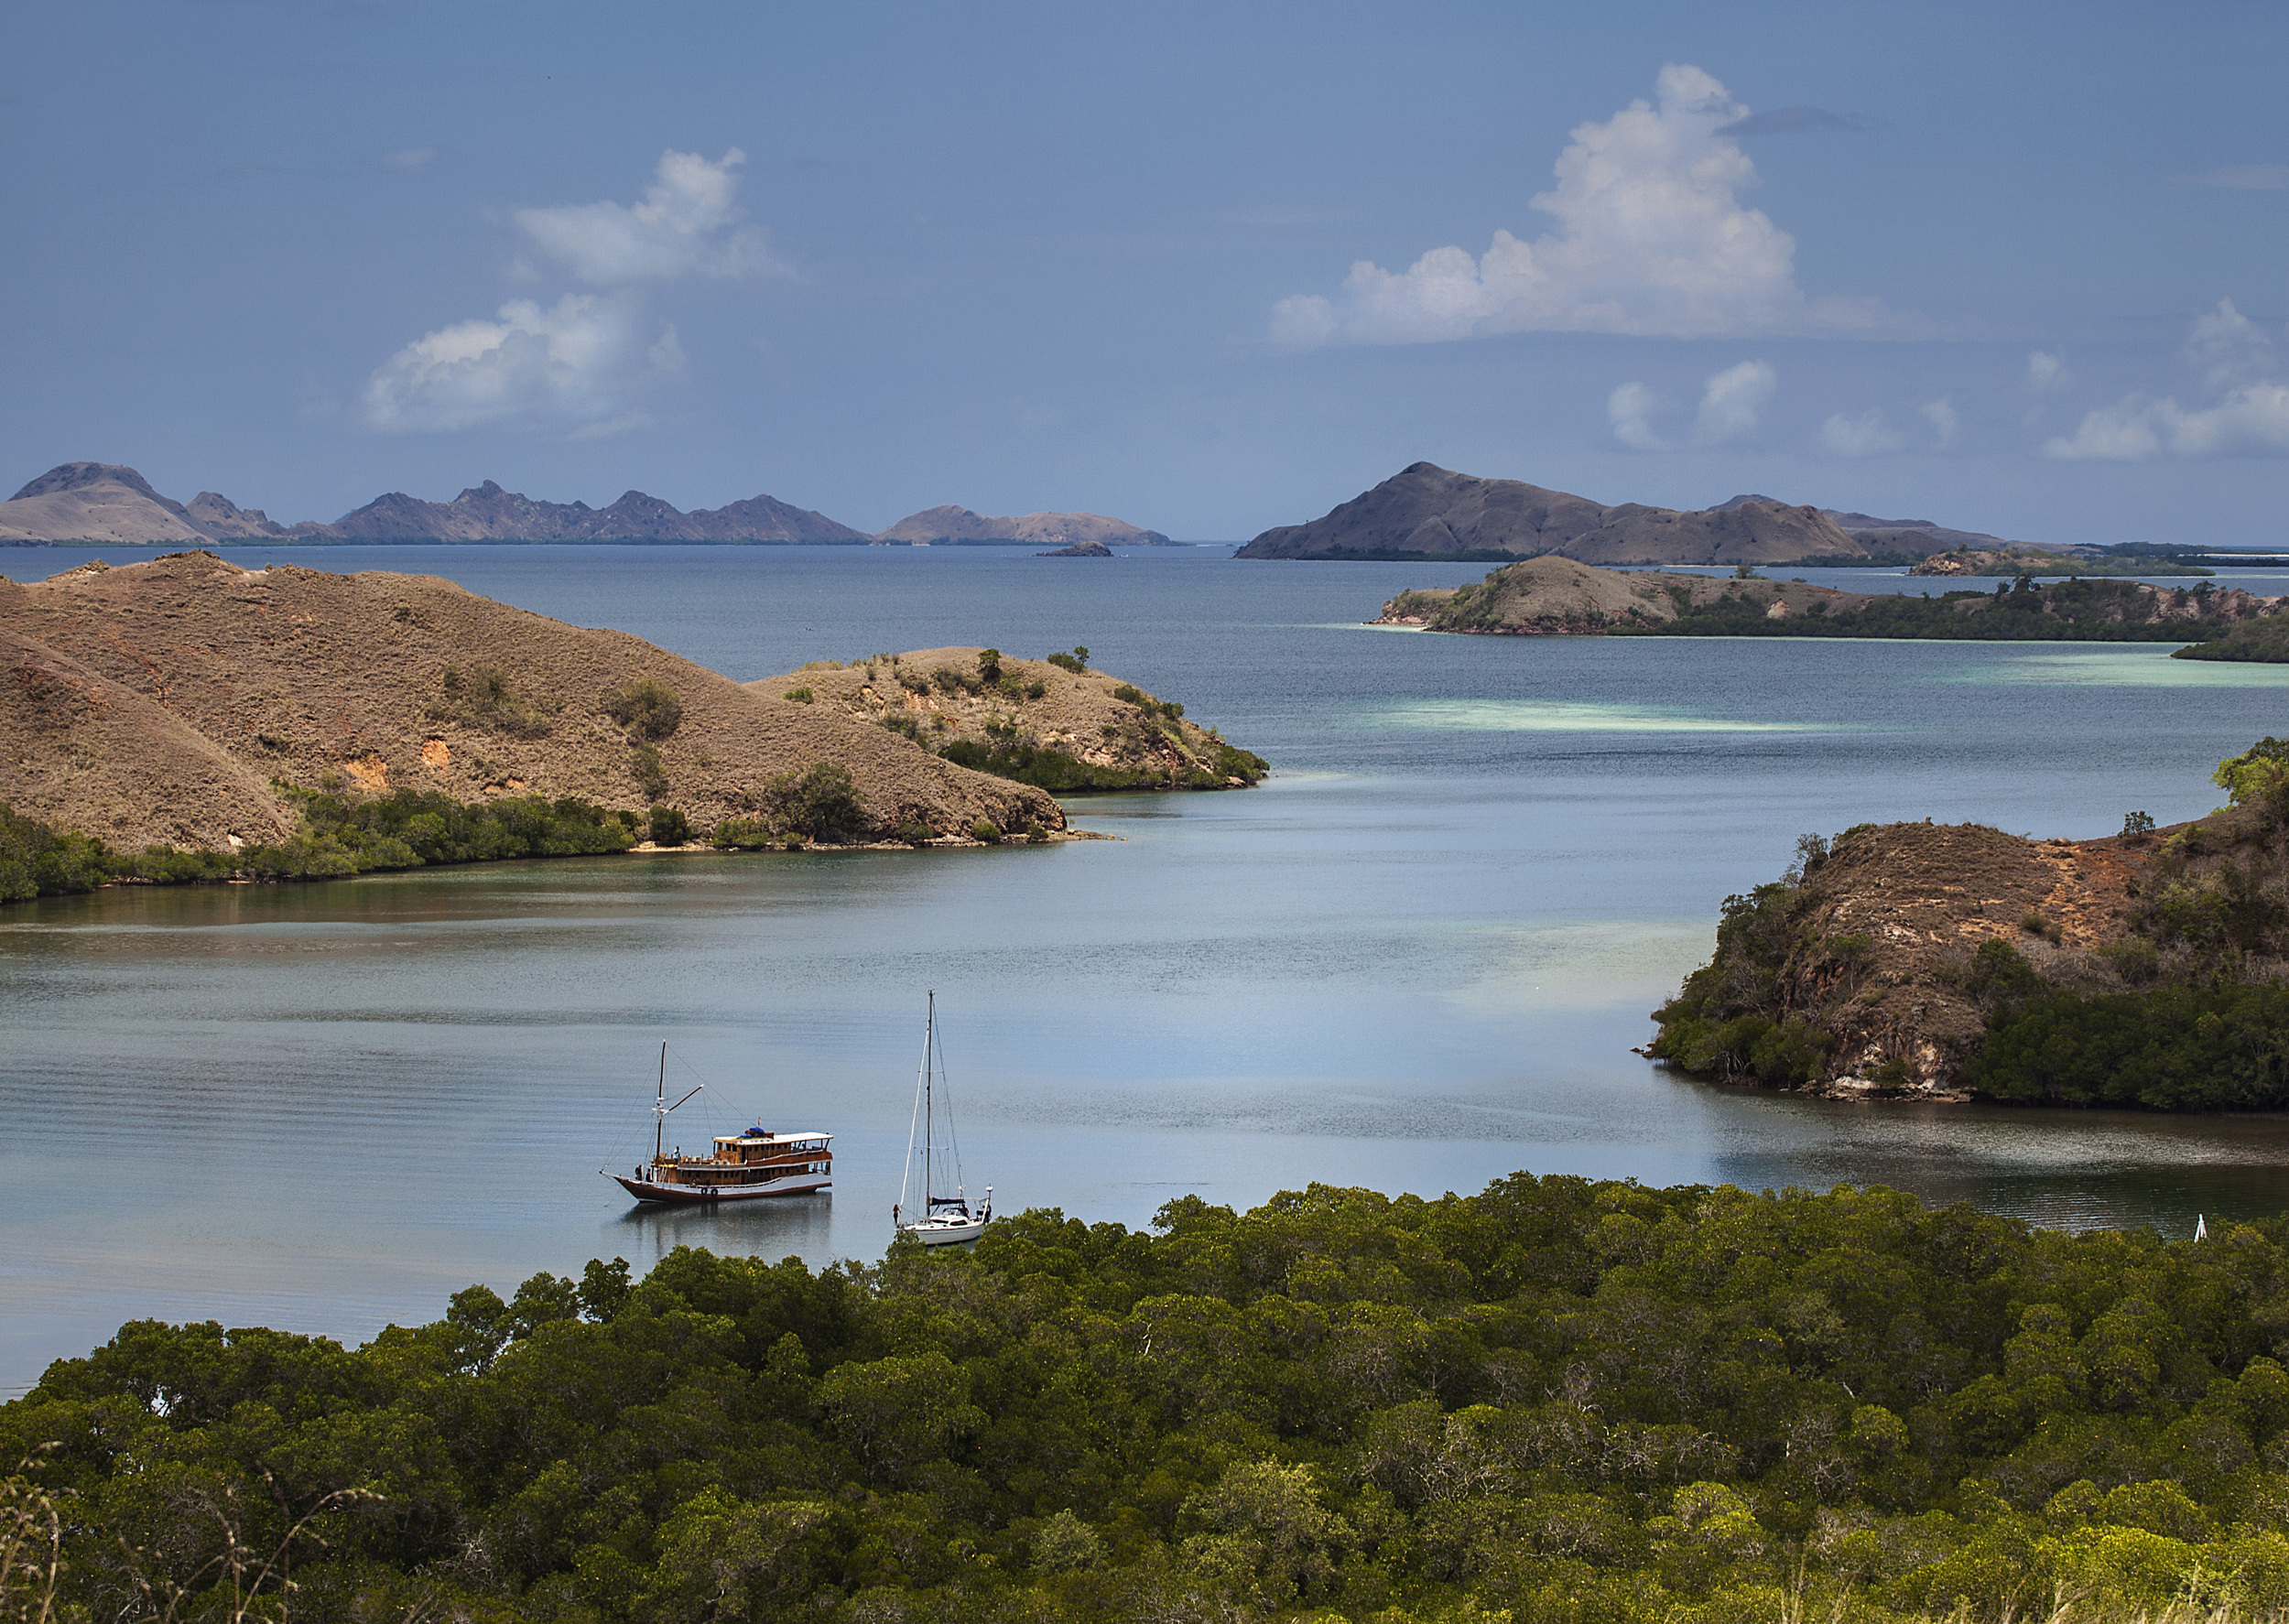 The viewpoint looking over the islands at Rinca National Park, off the island of Flores